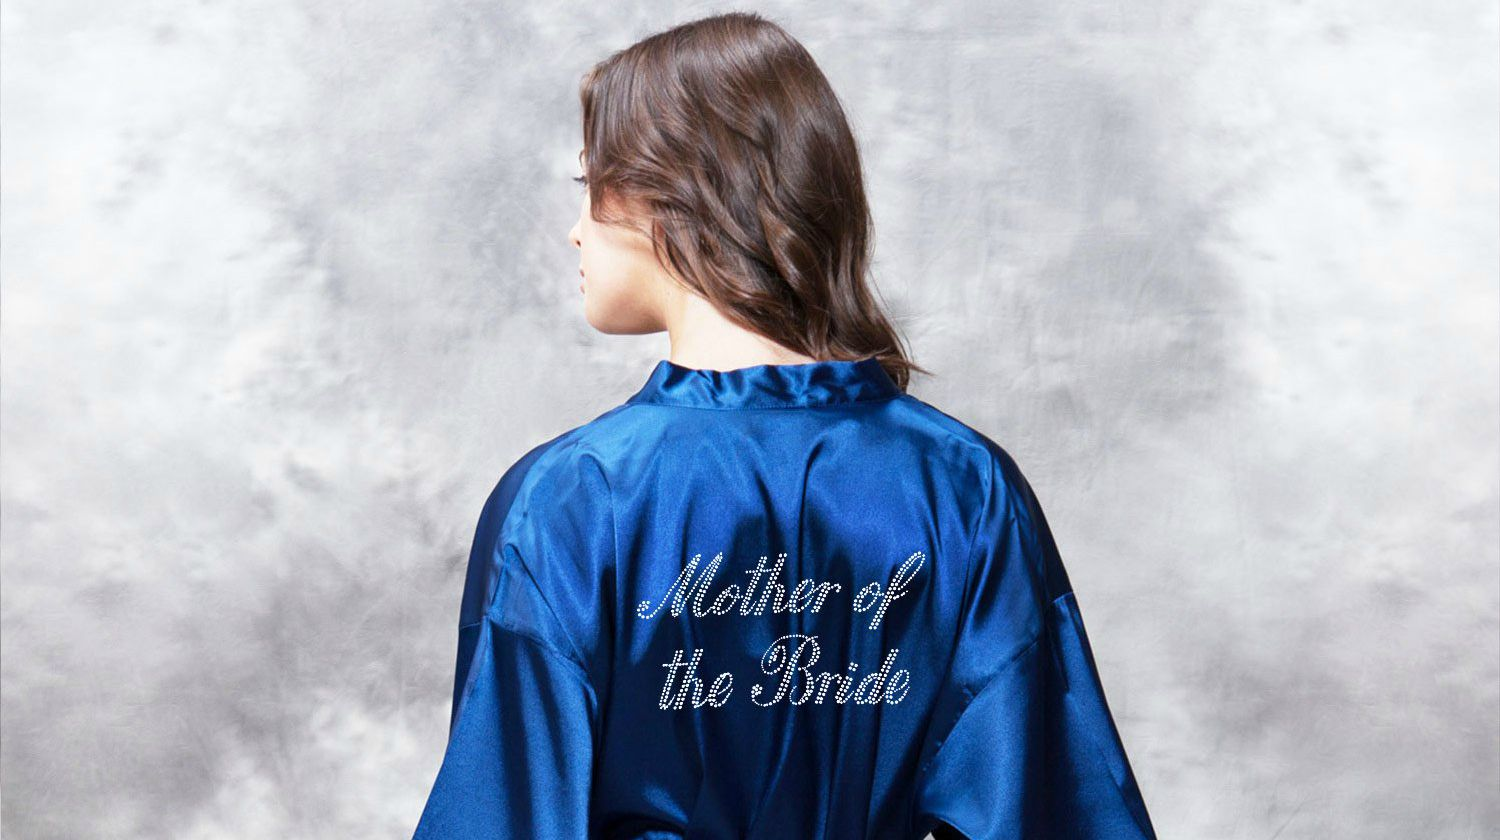 mother of the bride clear rhinestone satin kimono navy blue short robe | Mother Of The Bride Robe Embroidery Ideas | mother of the bride robe | mother of the bride robe wedding | Featured